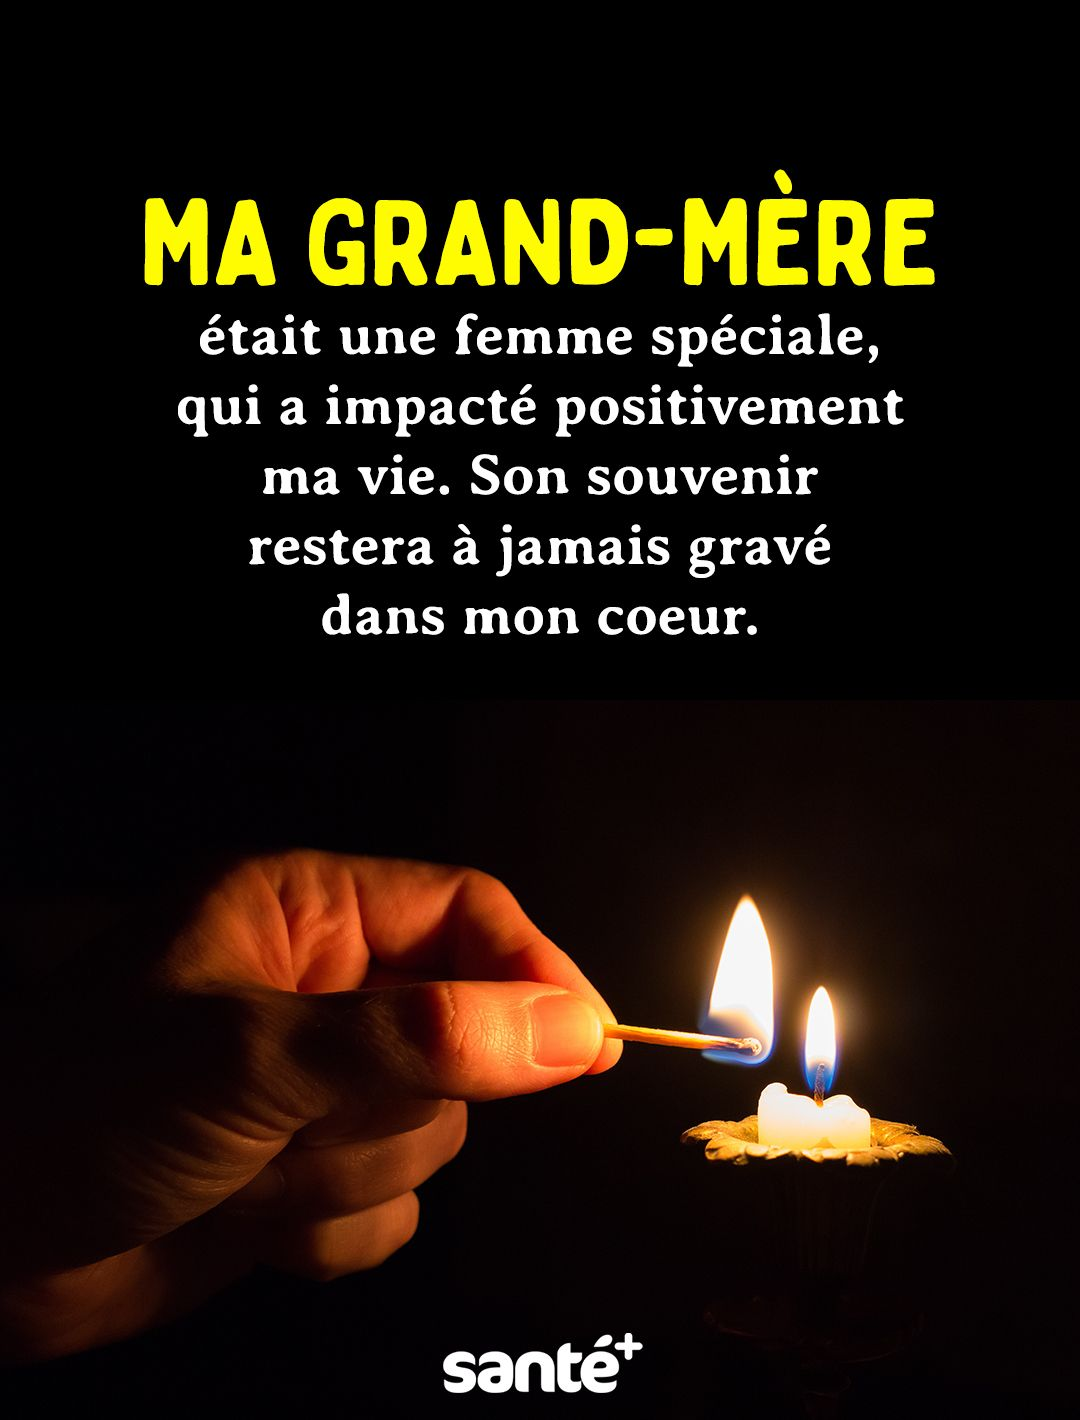 Poeme Pour Le Deces D Une Grand Mere : poeme, deces, grand, Citations, Citation, Décès,, Amour, Eternel,, Texte, Décès